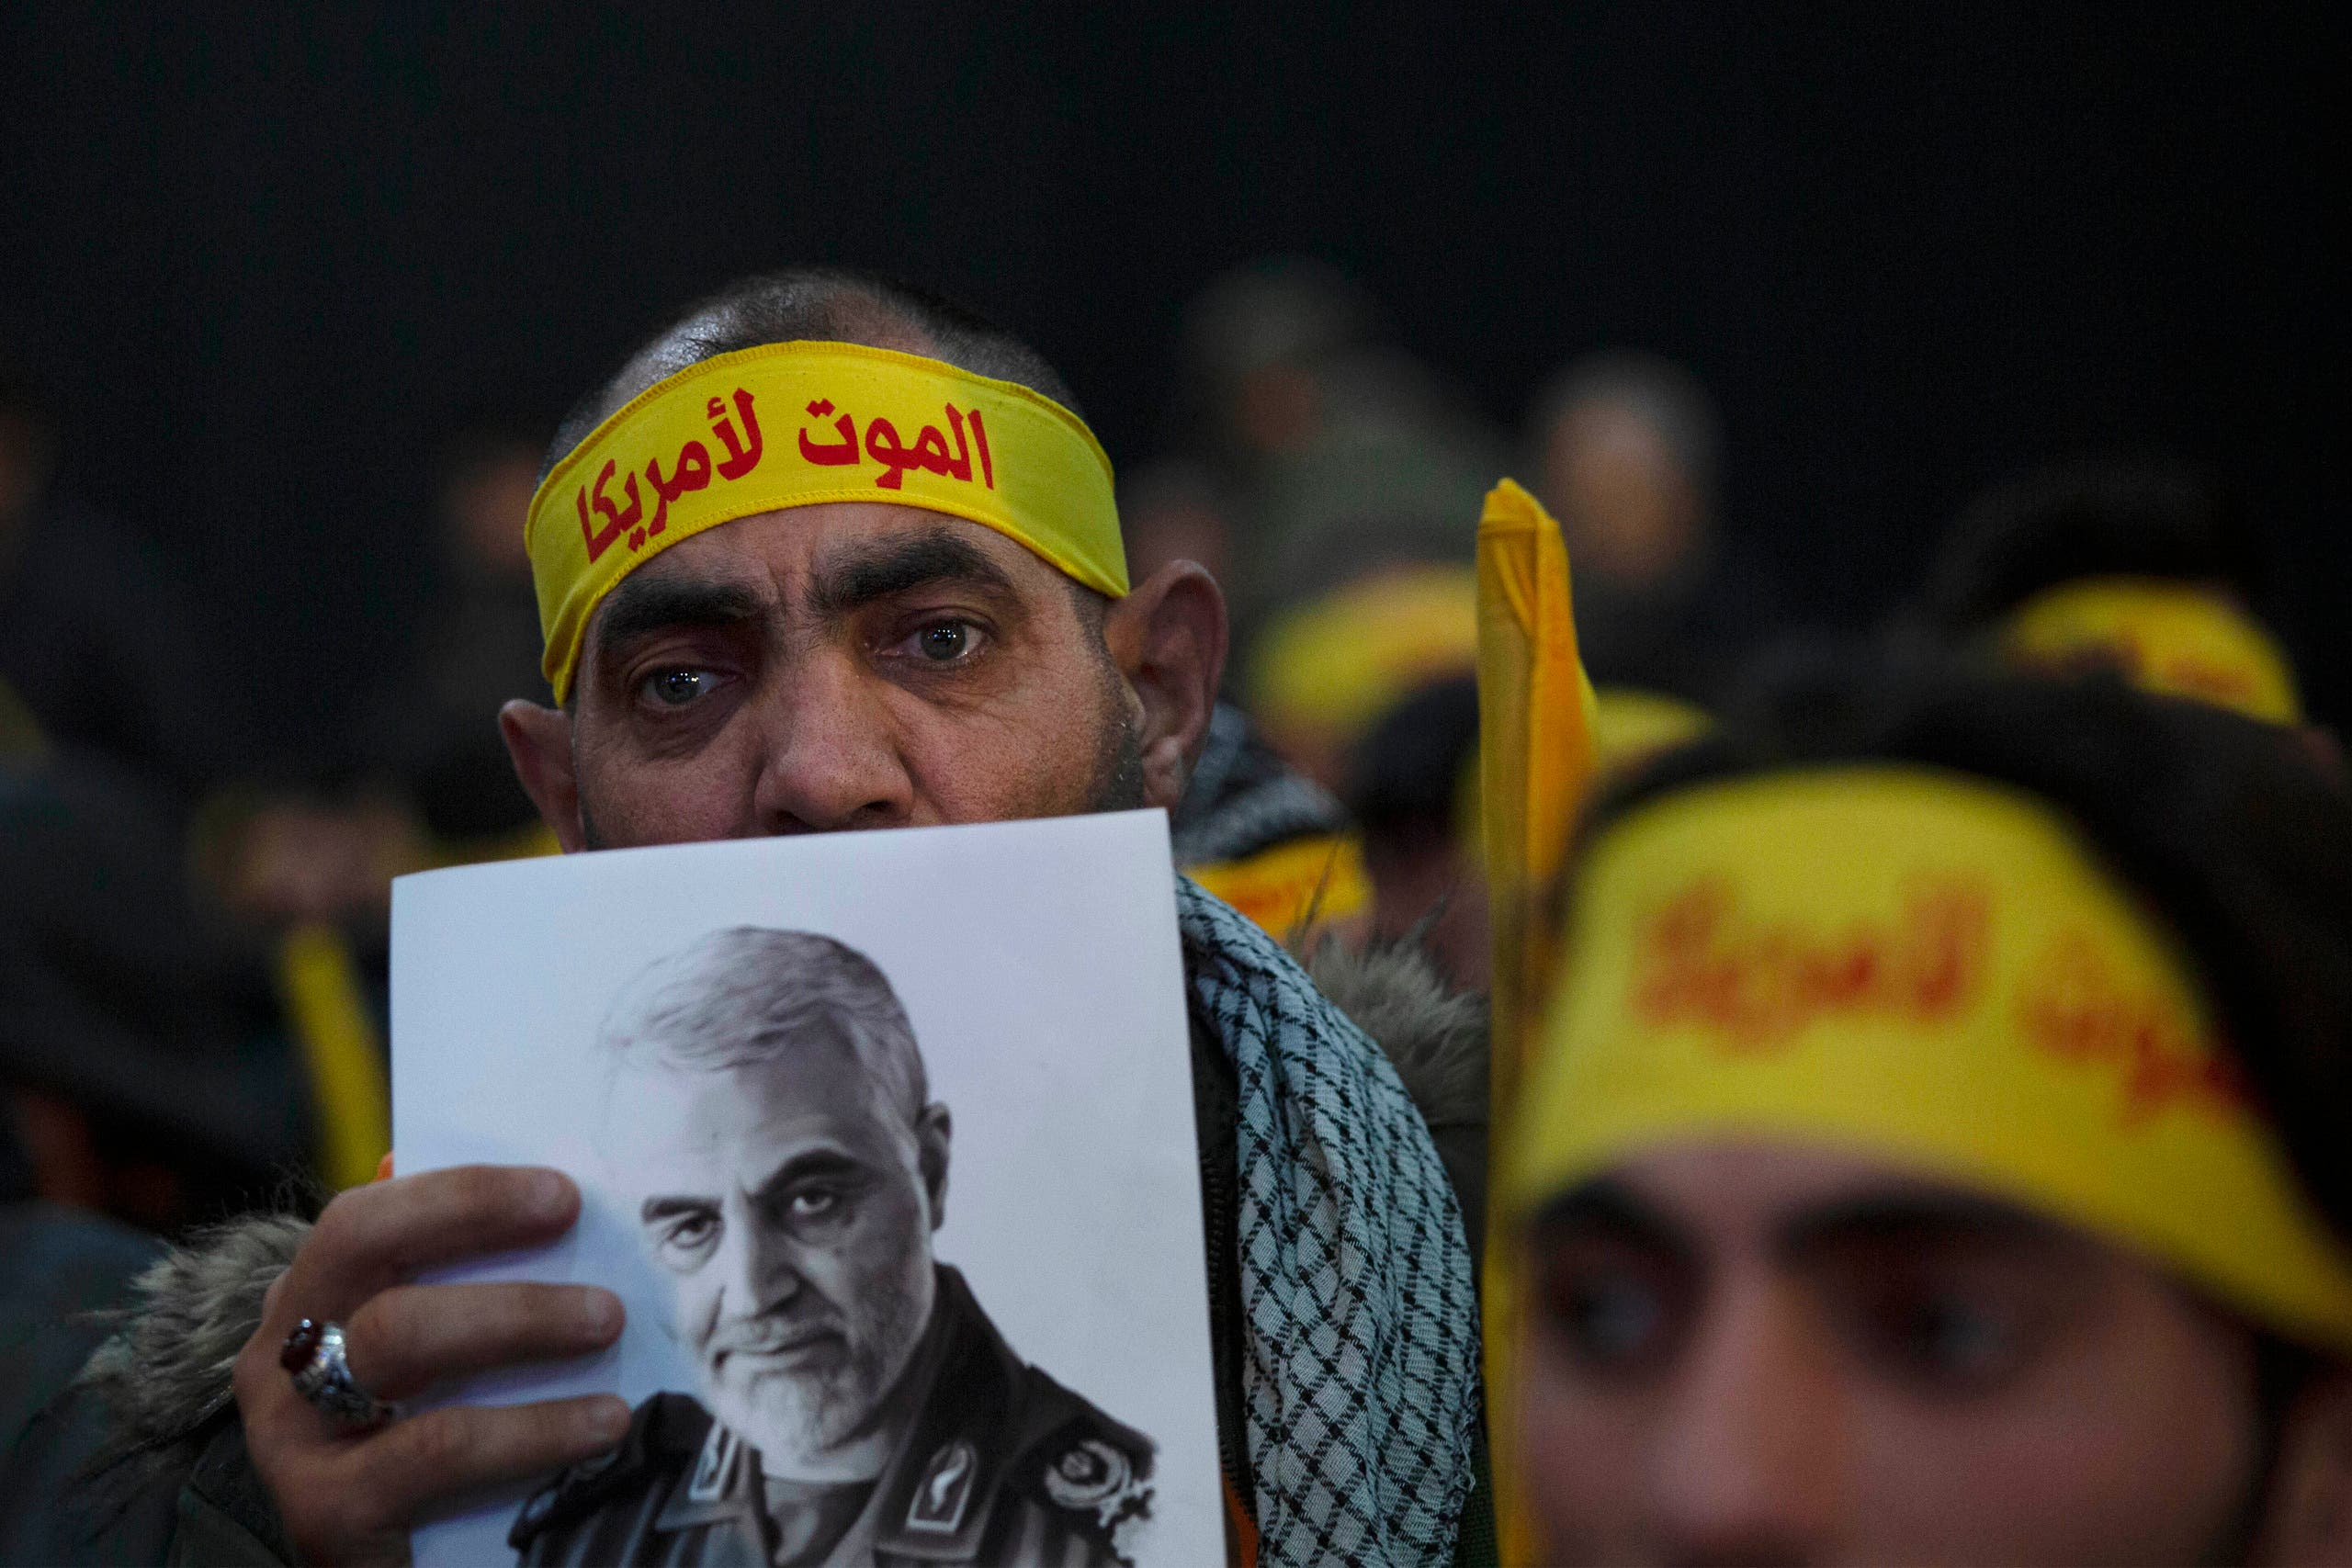 A supporter of Hezbollah leader Sayyed Hassan Nasrallah holds a portrait of slain Iranian Revolutionary Guard Gen. Qassem Soleimani before a televised speech by Nasrallah in a southern suburb of Beirut, Lebanon, Sunday, Jan. 5, 2020 following the U.S. airstrike in Iraq that killed Soleimani. His headband reads: death to America. (AP)